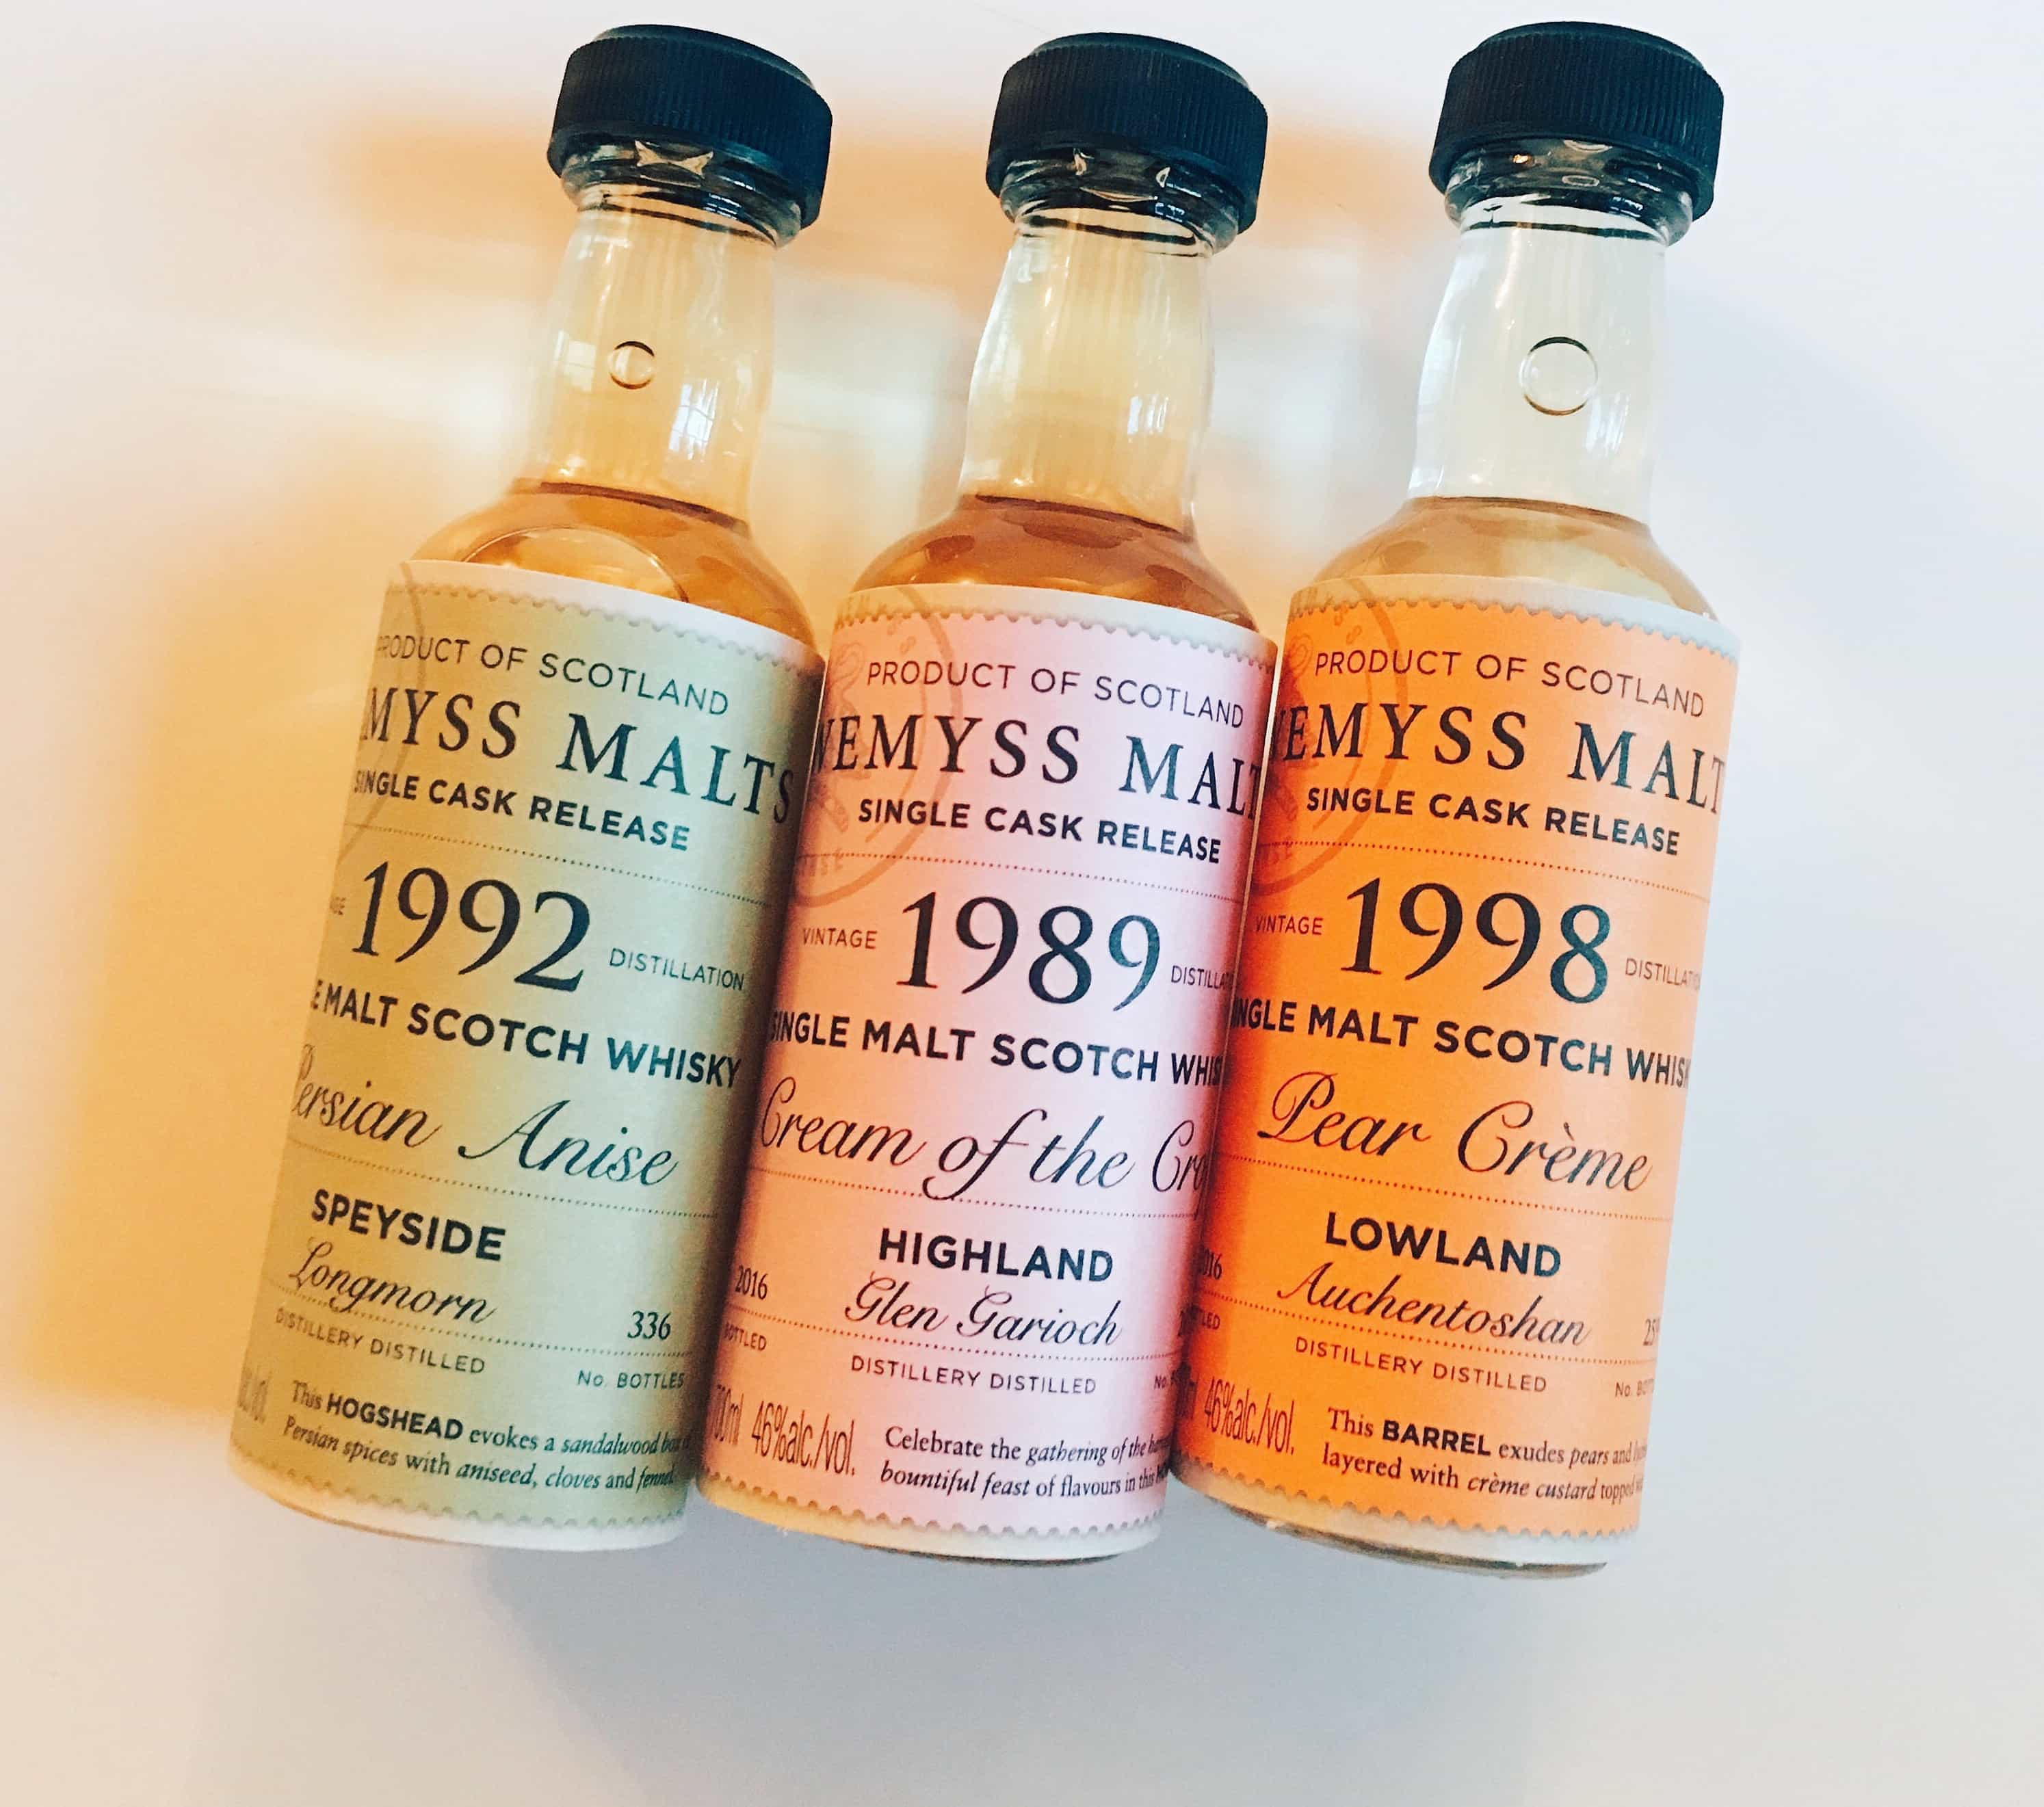 Wemyss Malts whiskies